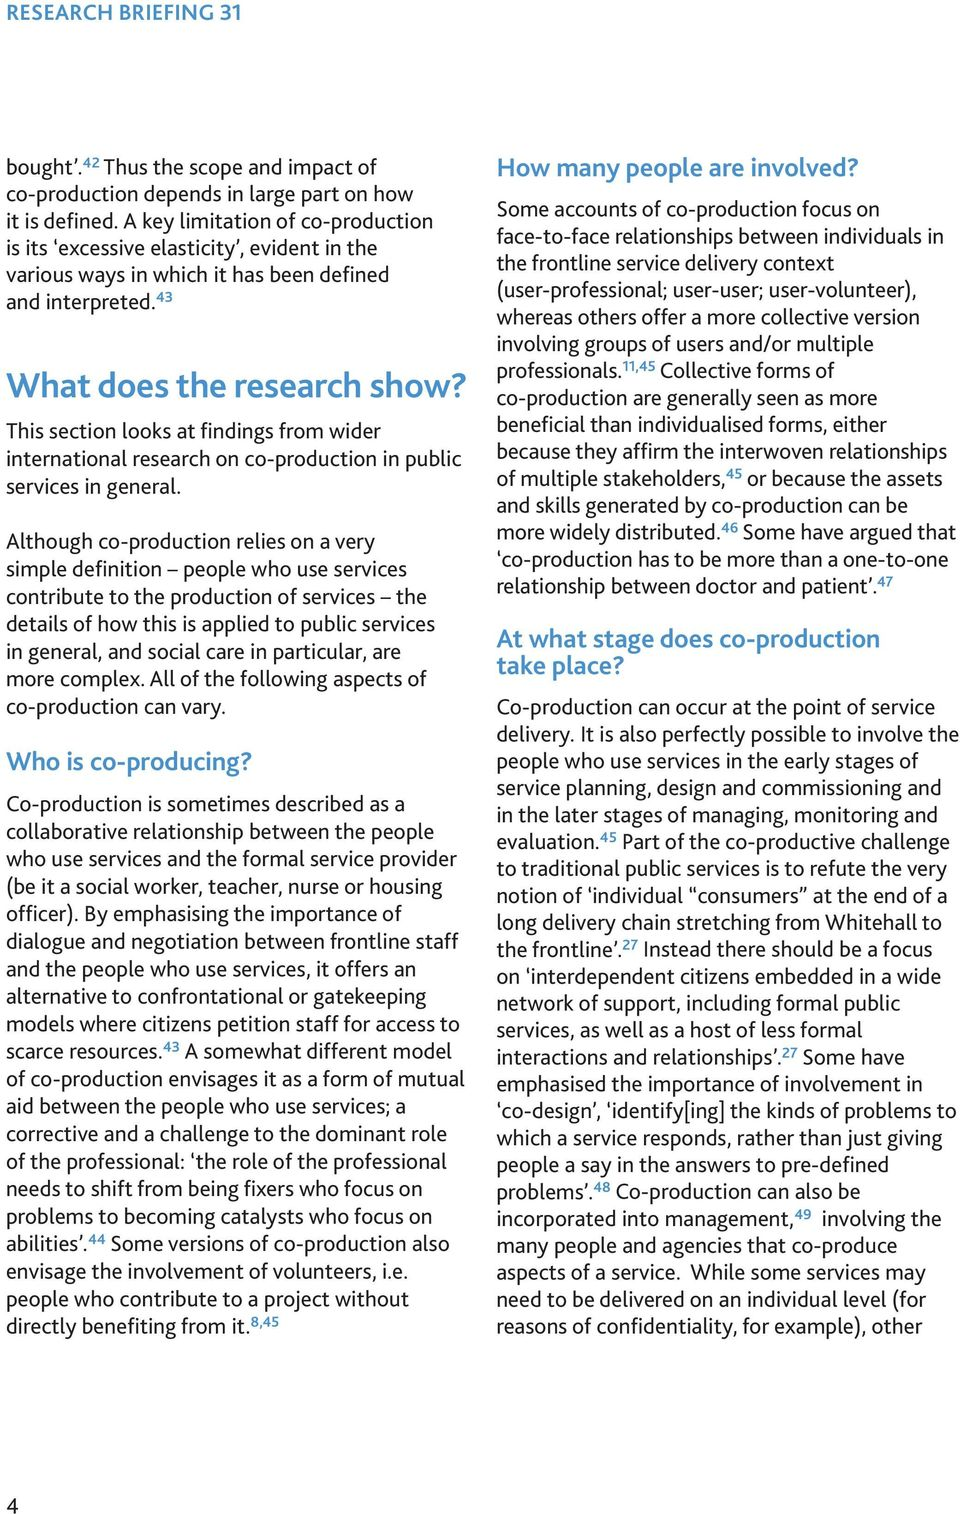 This section looks at findings from wider international research on co-production in public services in general.